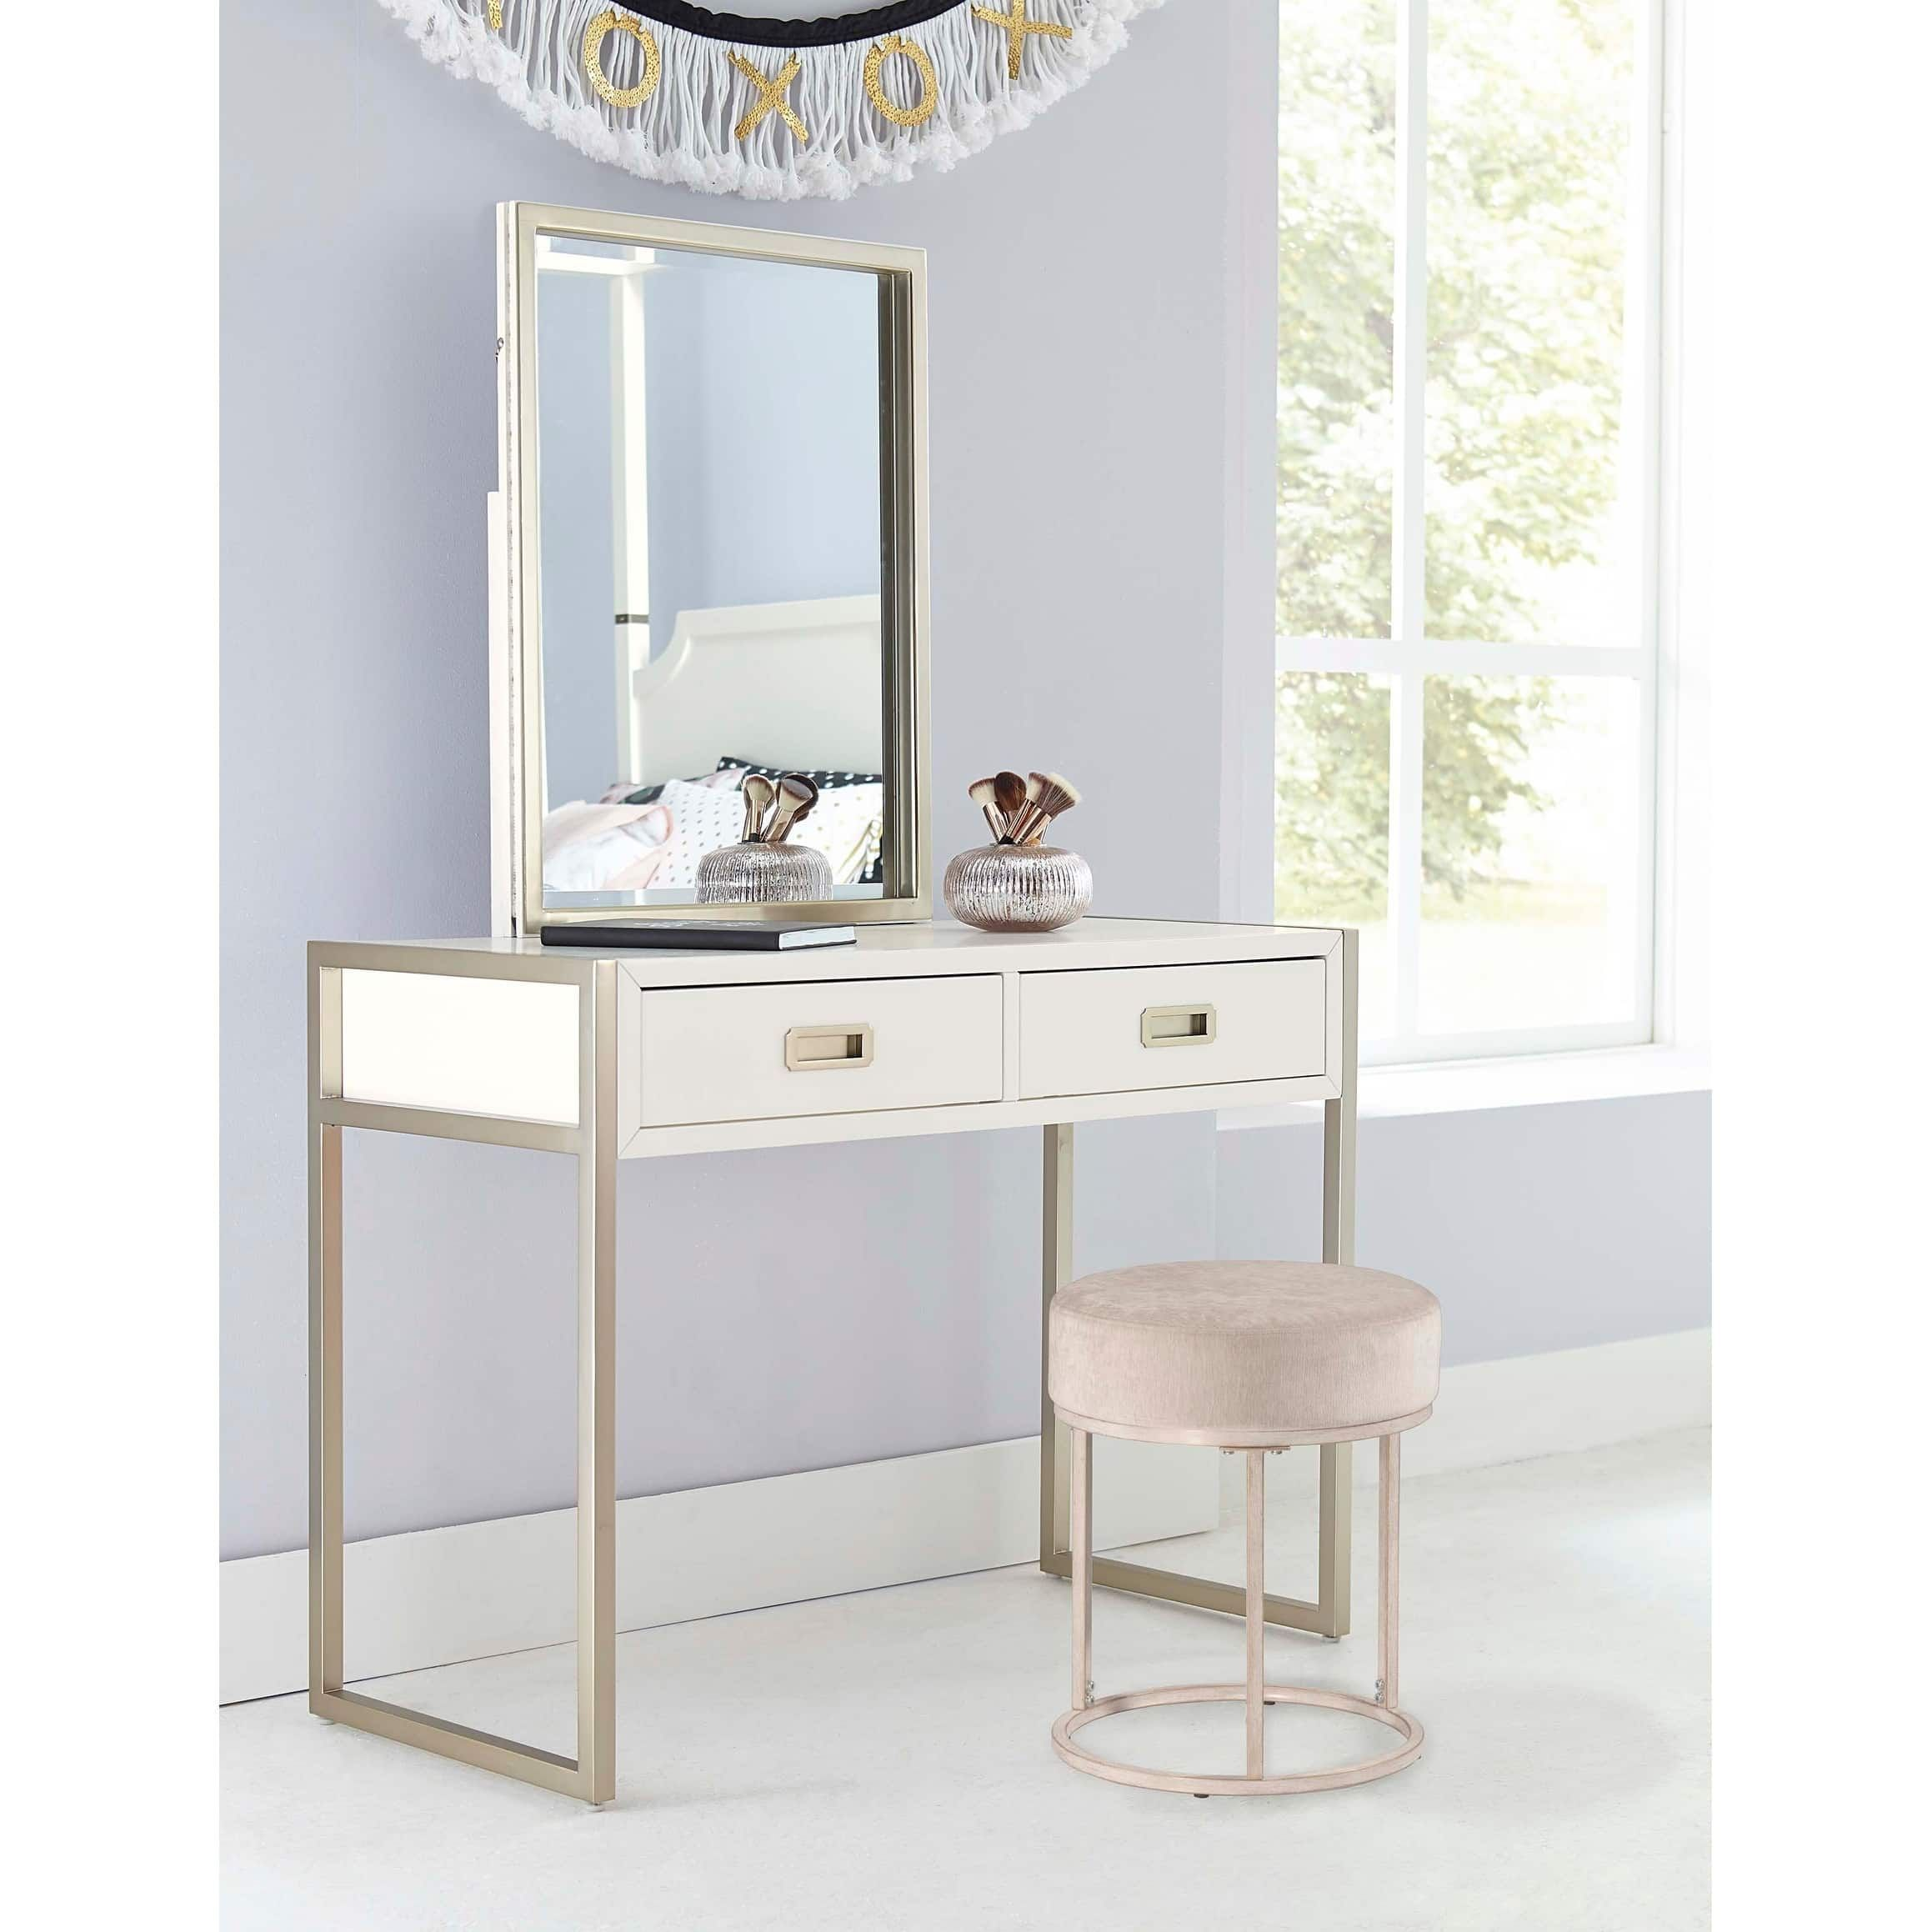 Hilale Furniture Swanson White Metal Vanity Stool